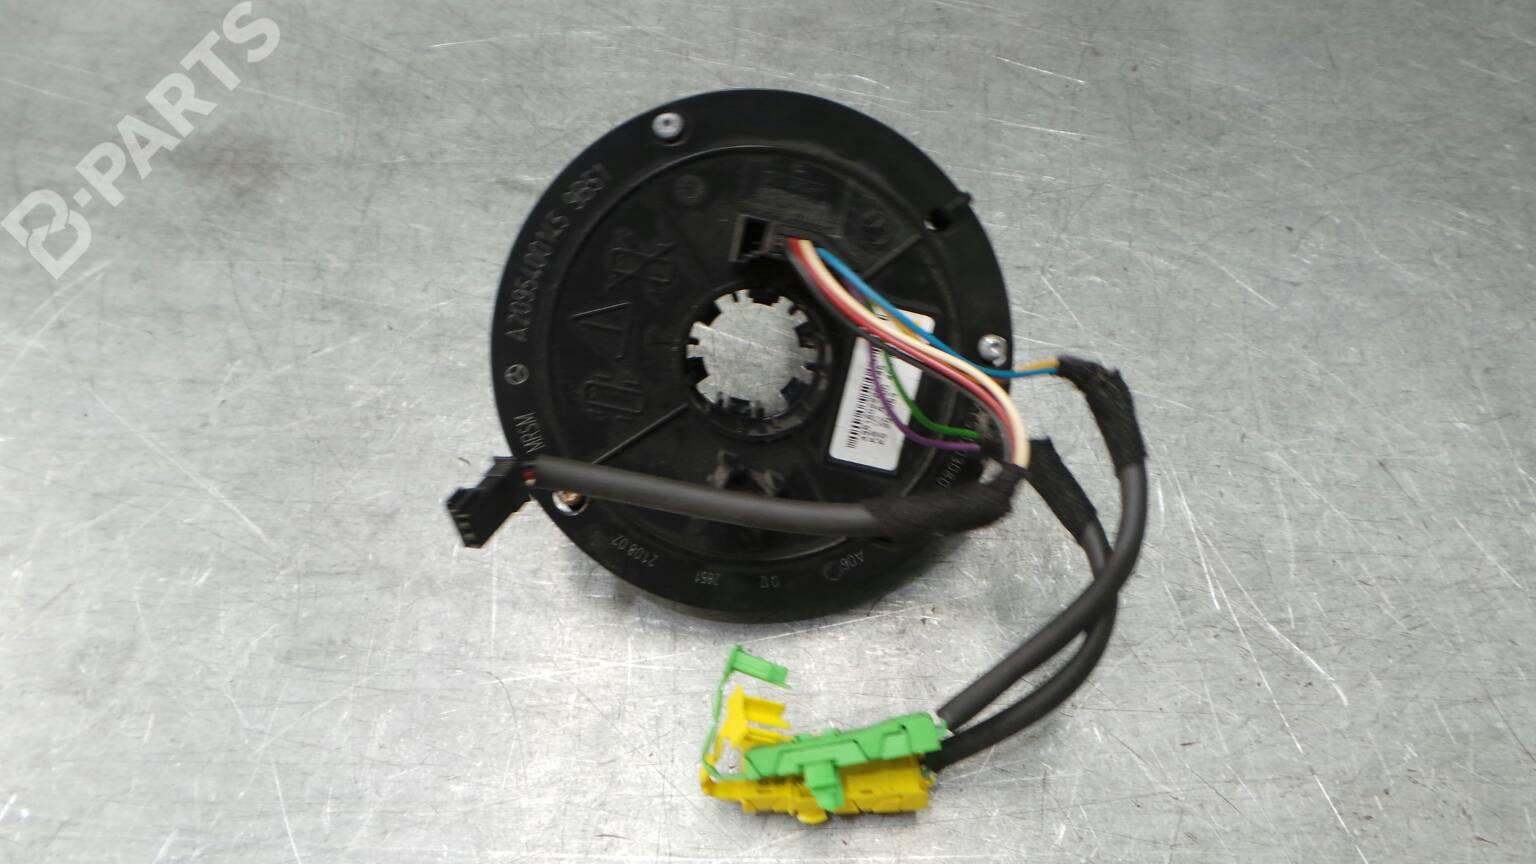 Airbag Squib Mercedes Benz C Class Coupe Cl203 220 Cdi 203706 Wiring A2095400145 A0004640618